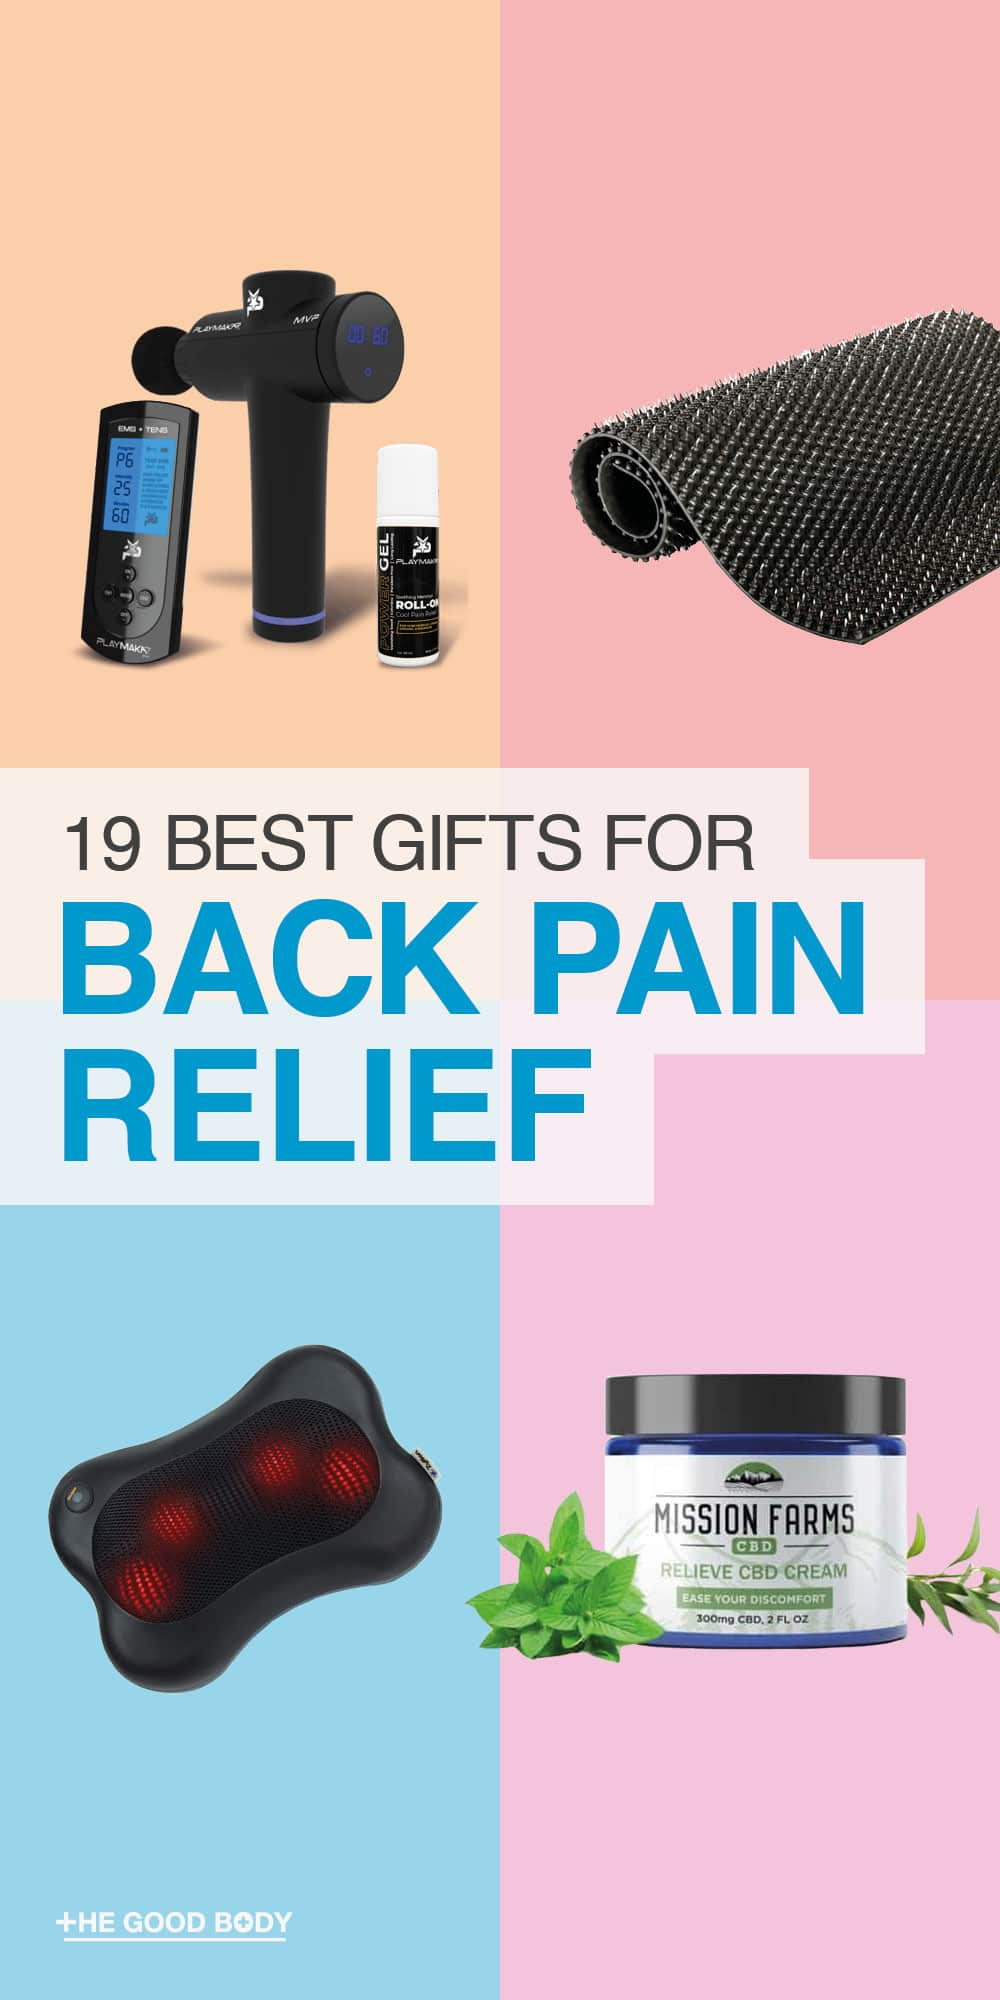 Back Pain Gifts – Pin It!